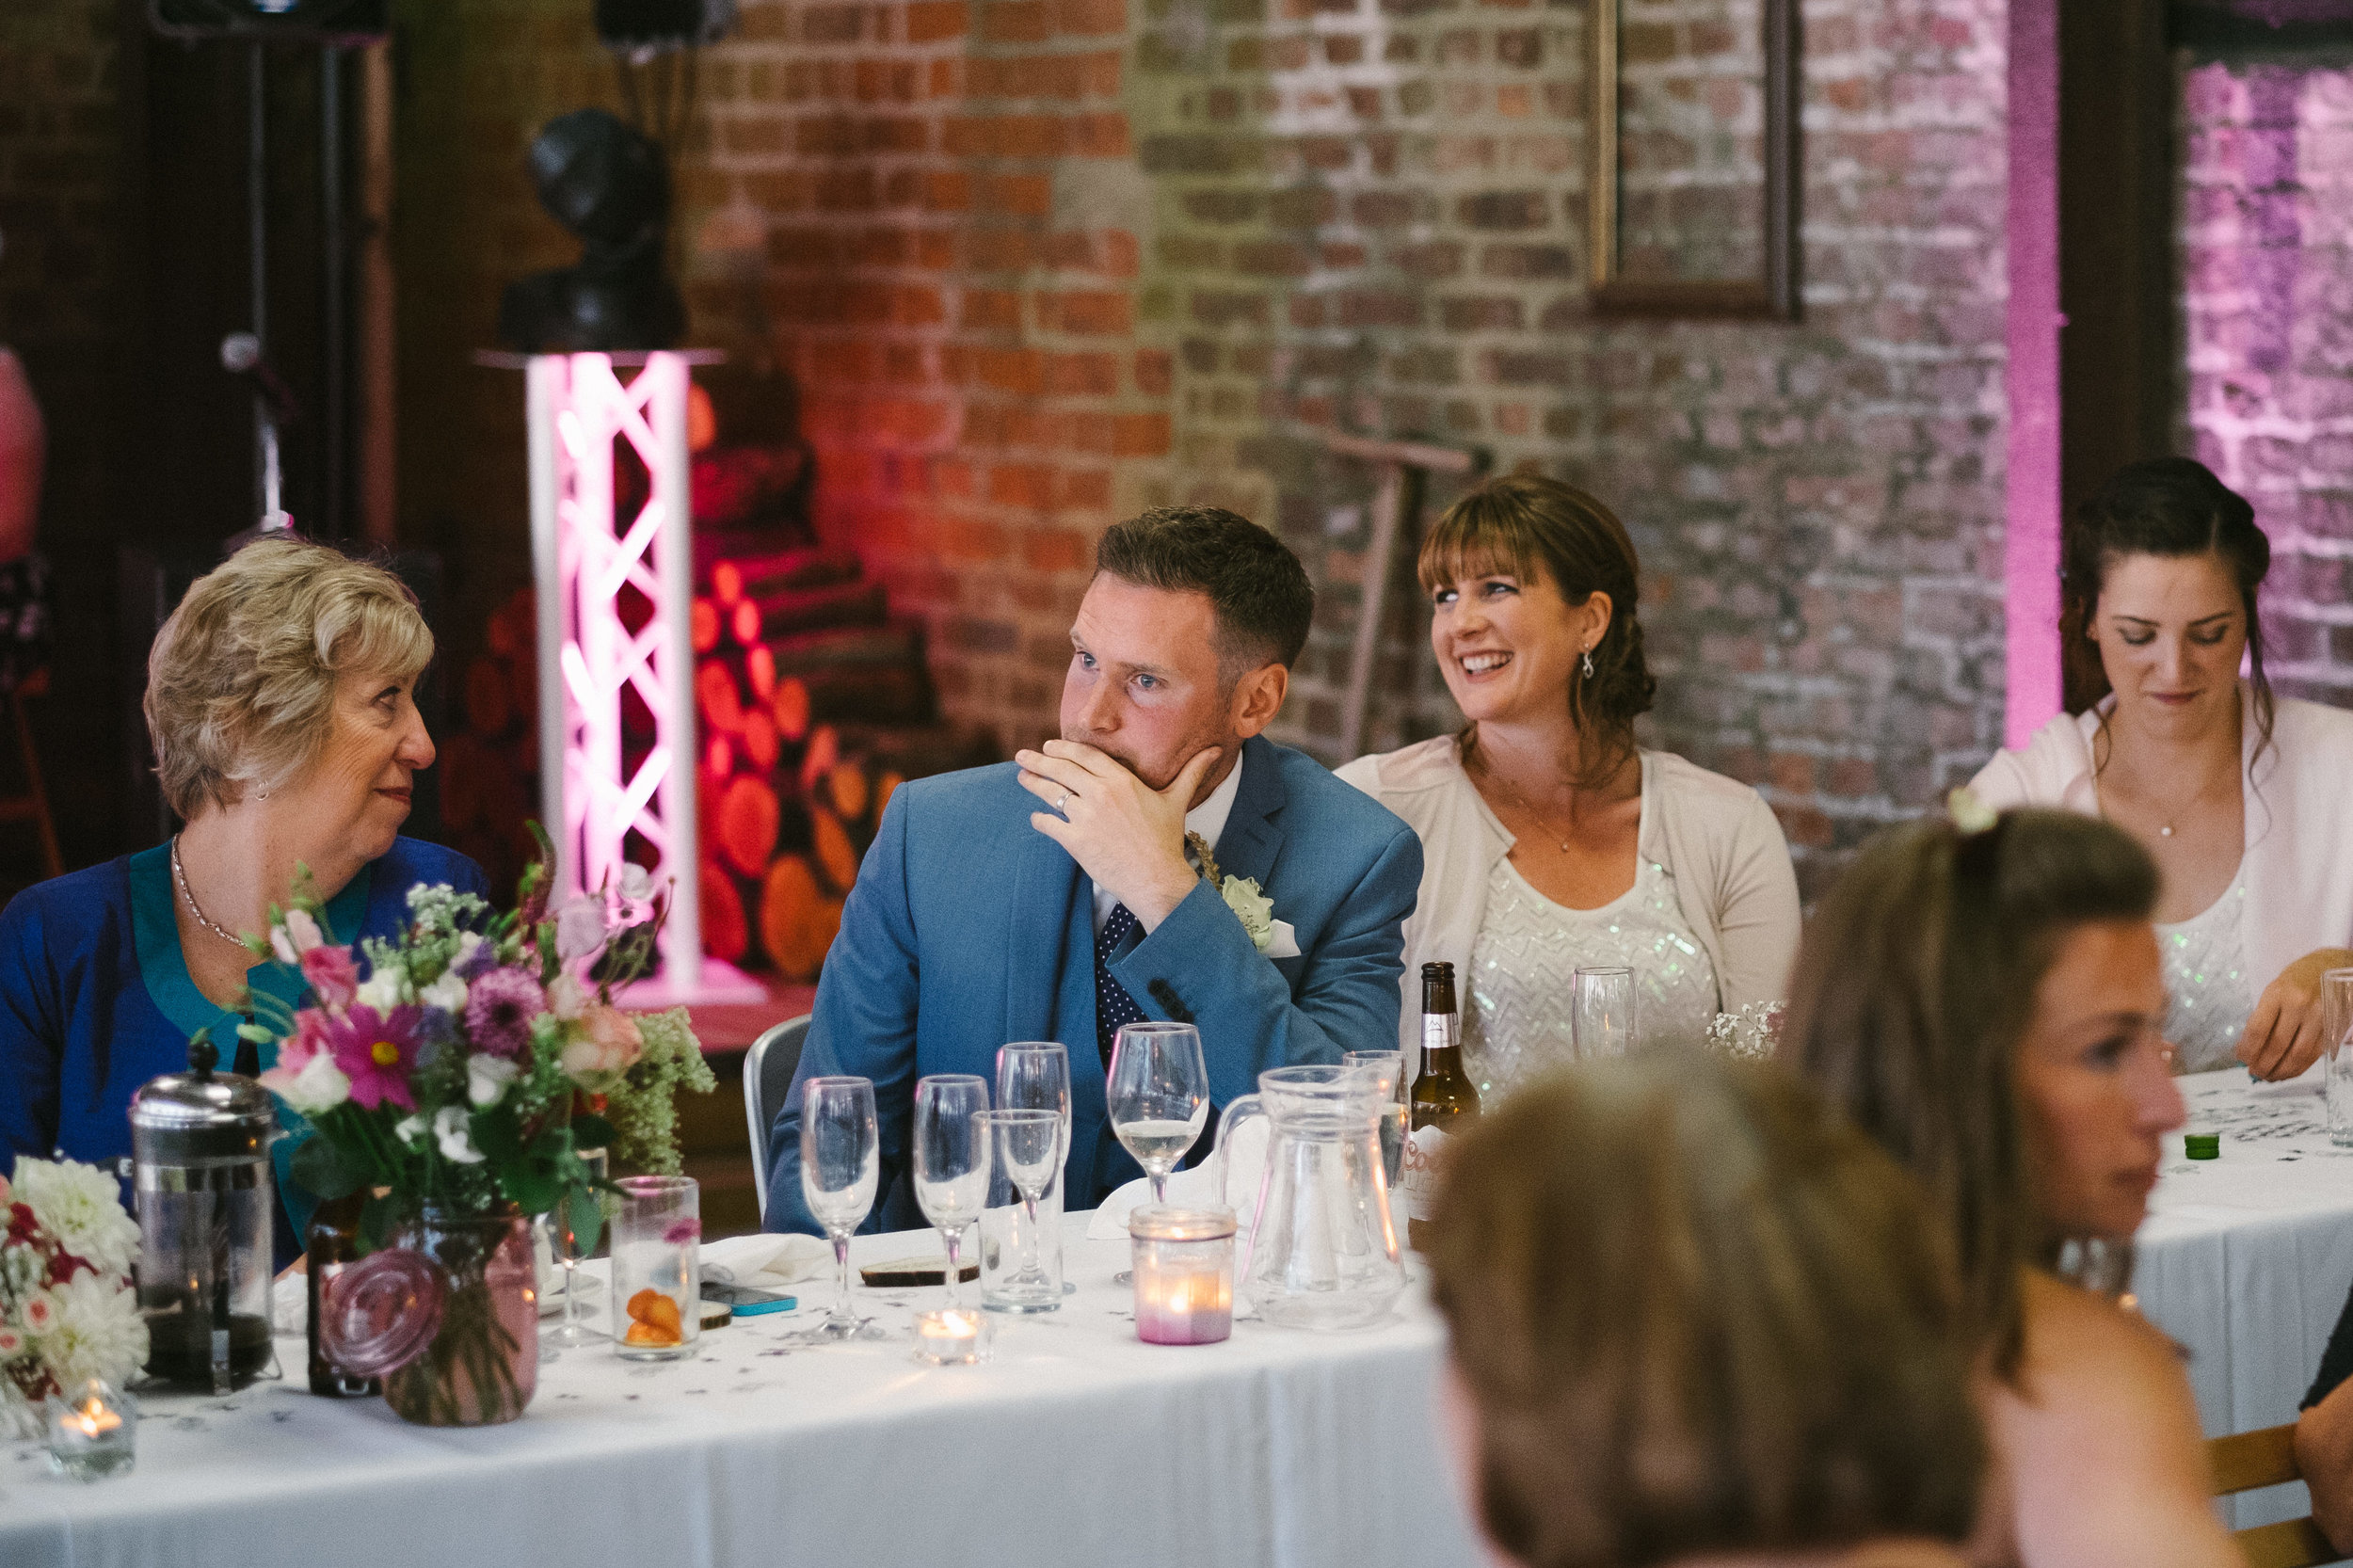 Brides brother cries during the wedding speeches at Dale Farm